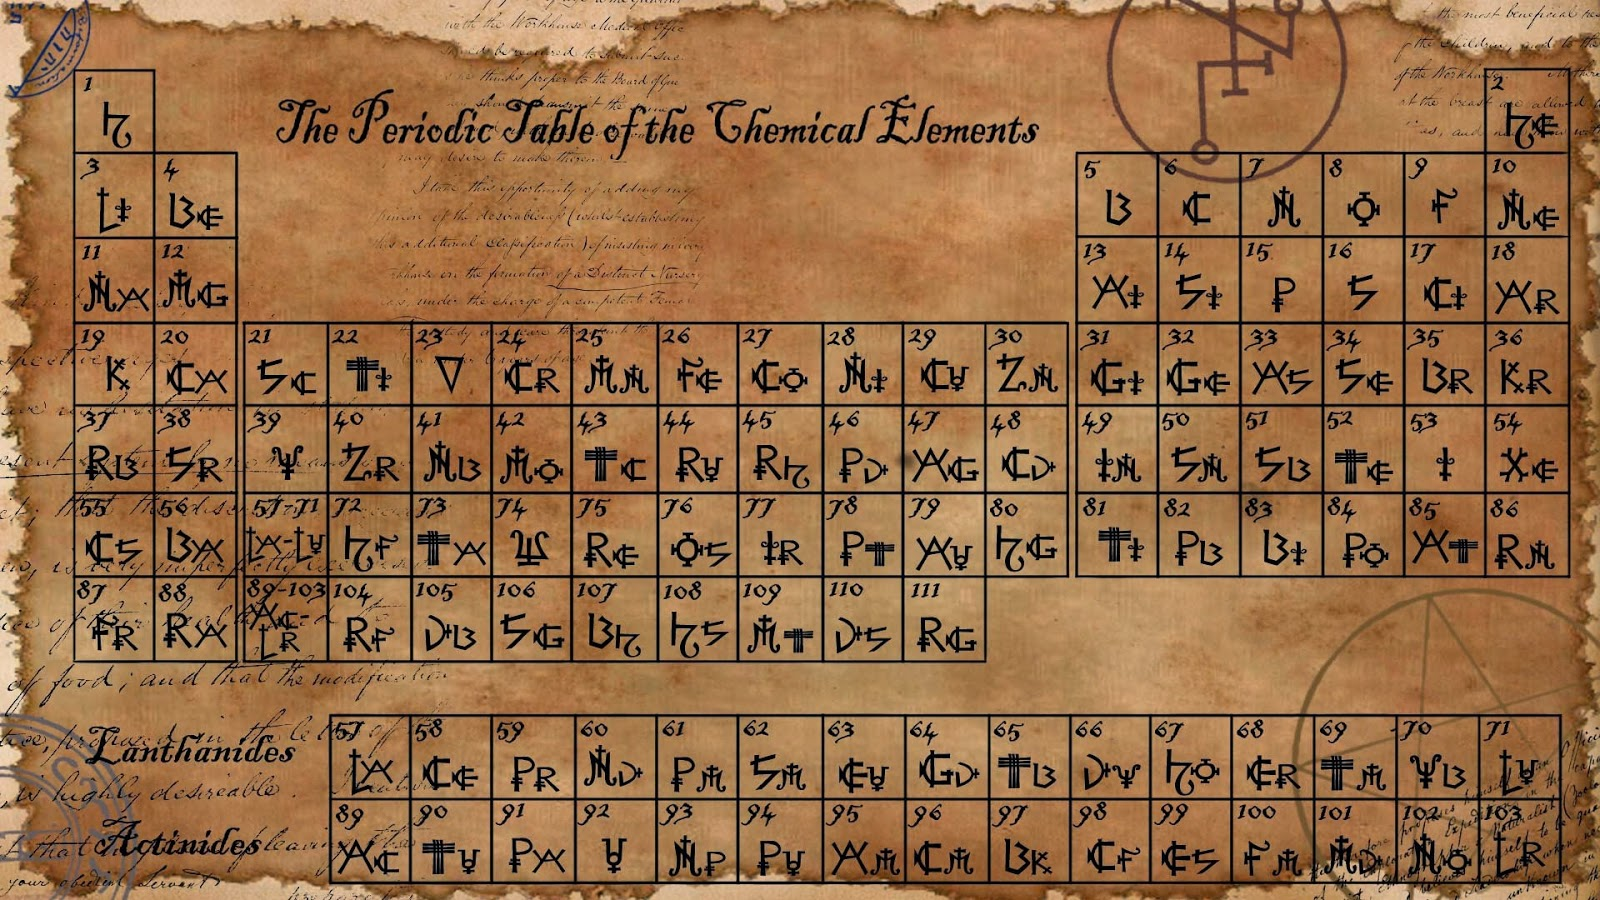 Industrial chemistry education spot periodic tables and the elements have been one of the most salient discoveries in the periodic table during the era of hennig brand he made the first discovery of an element gamestrikefo Images